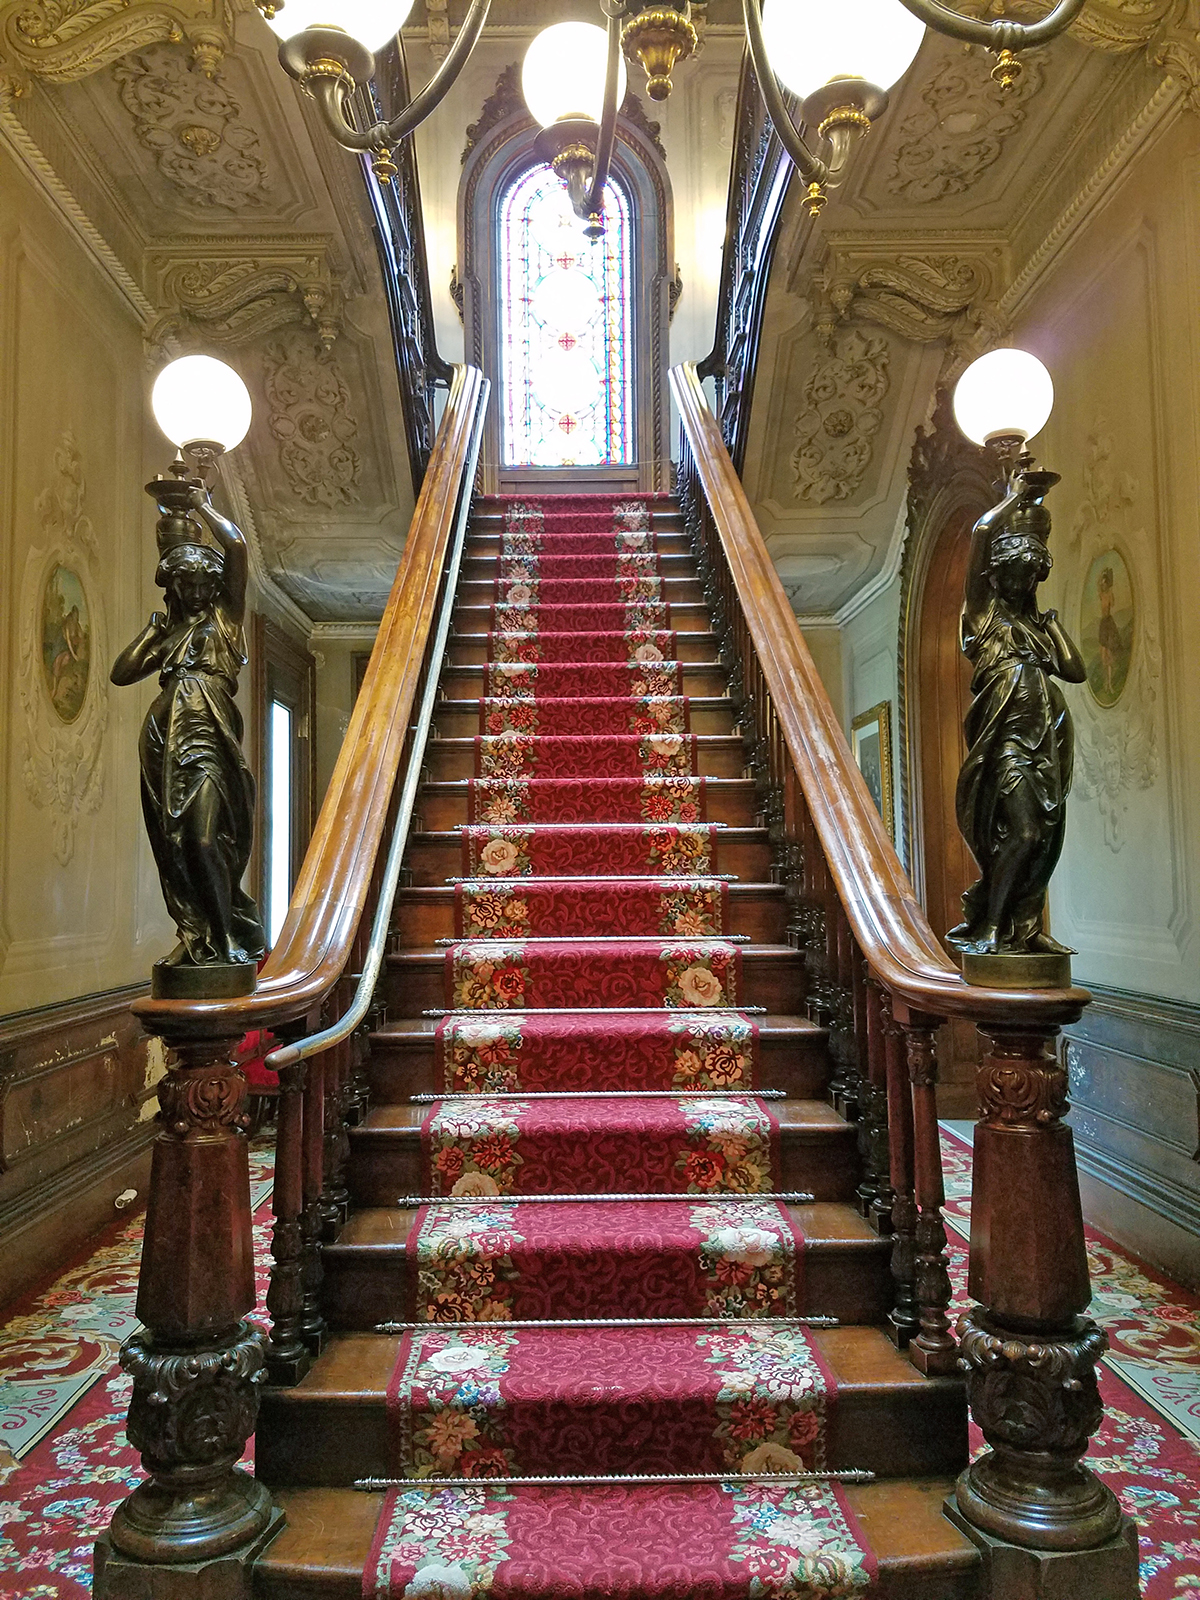 Photograph: Intricate, iconic scrollwork is evident throughout Victoria Mansion; photo by Robin Catalano.